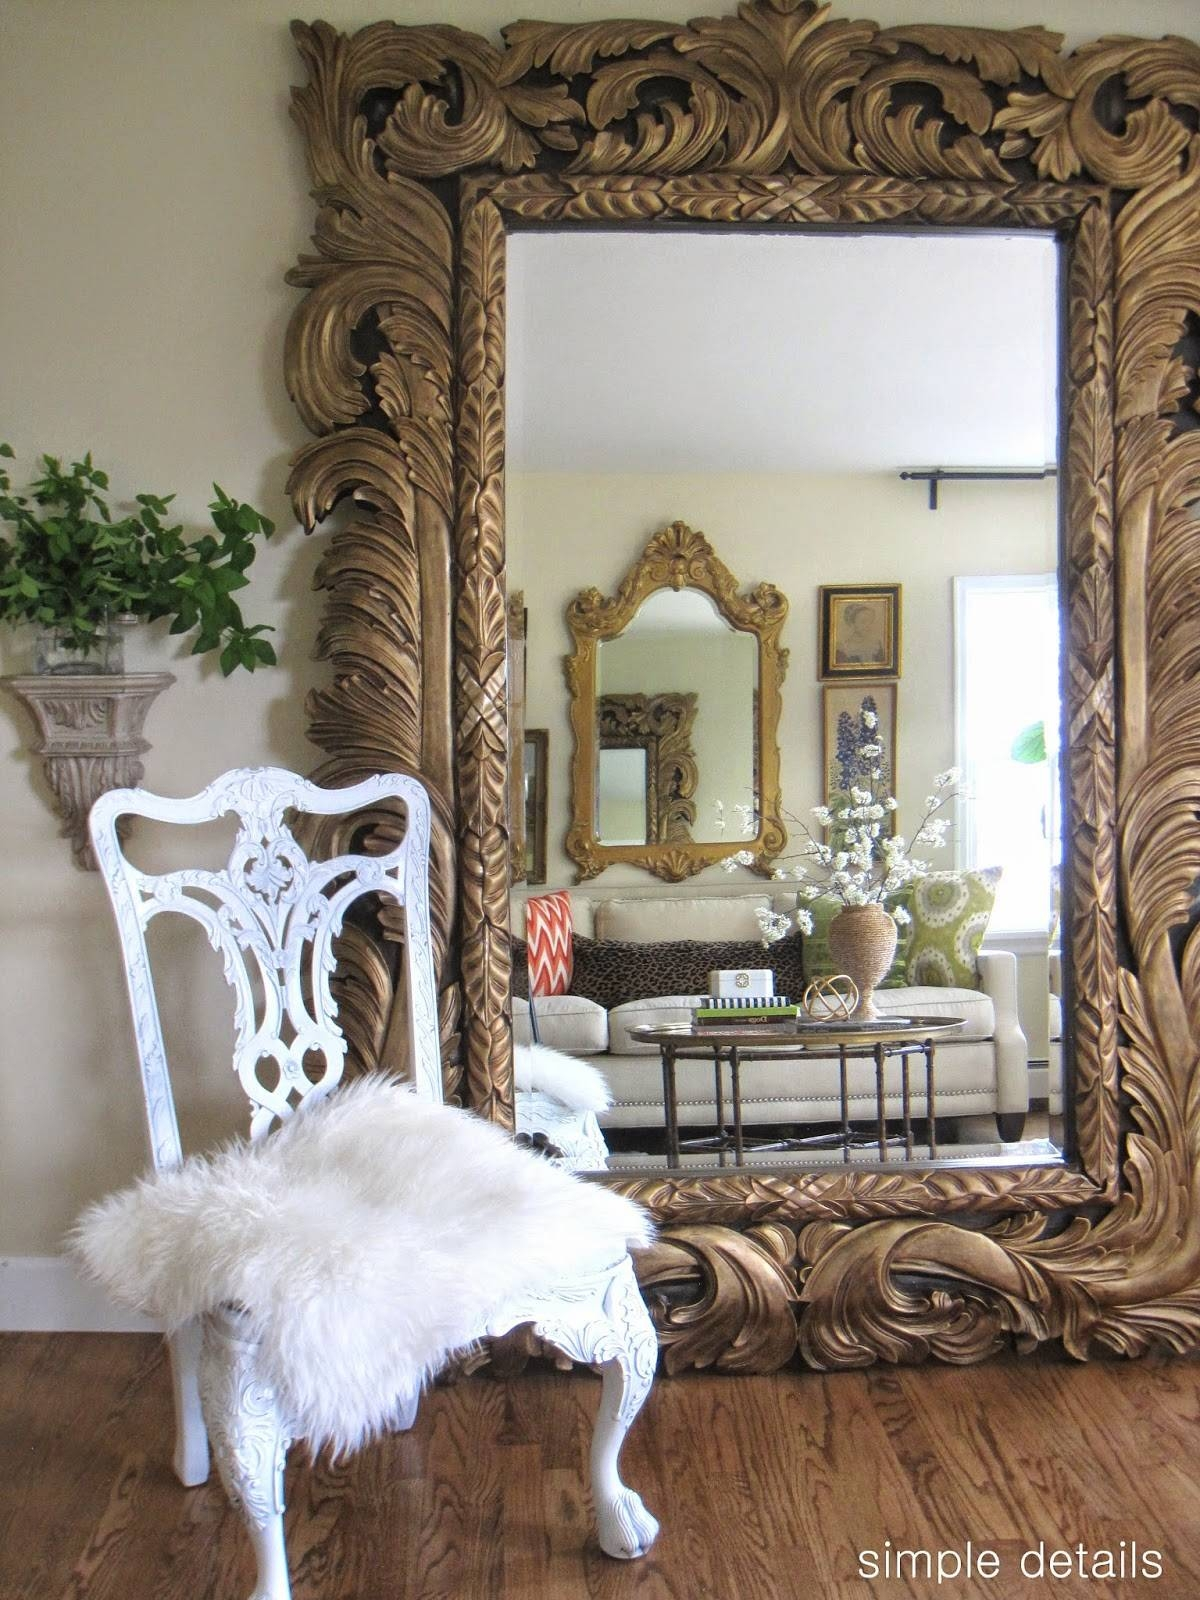 Simple Details: Living Room Refresh in Huge Ornate Mirrors (Image 14 of 15)